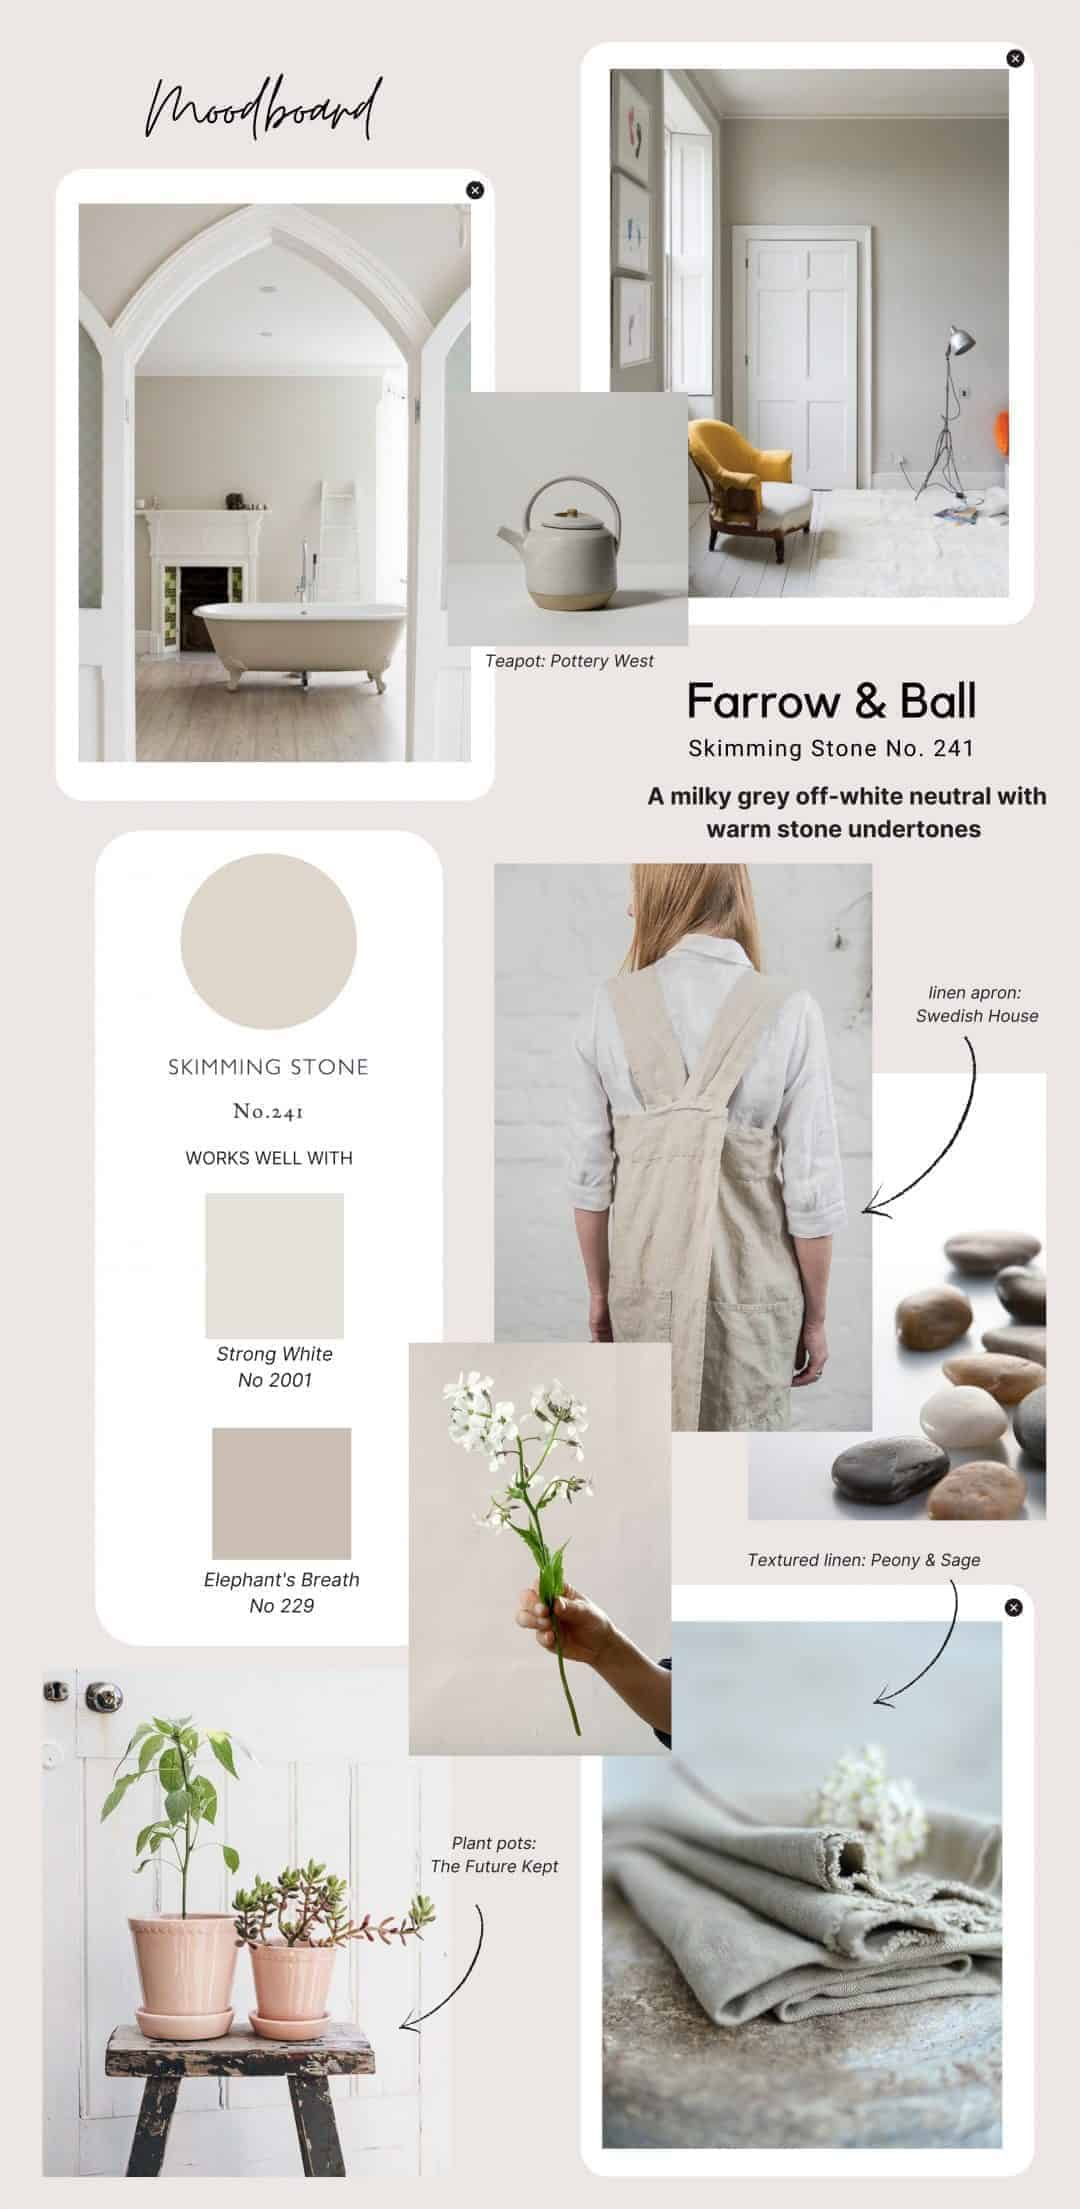 skimming stone farrow and ball paint moodboard showing how to decorate with this soft milky pale grey with warm stone undertones that works so well with elephant's breath and strong white. Hope you love the moodboard I have created for my own country cottage #farrowandball #skimmingstone #grey #neutral #paint